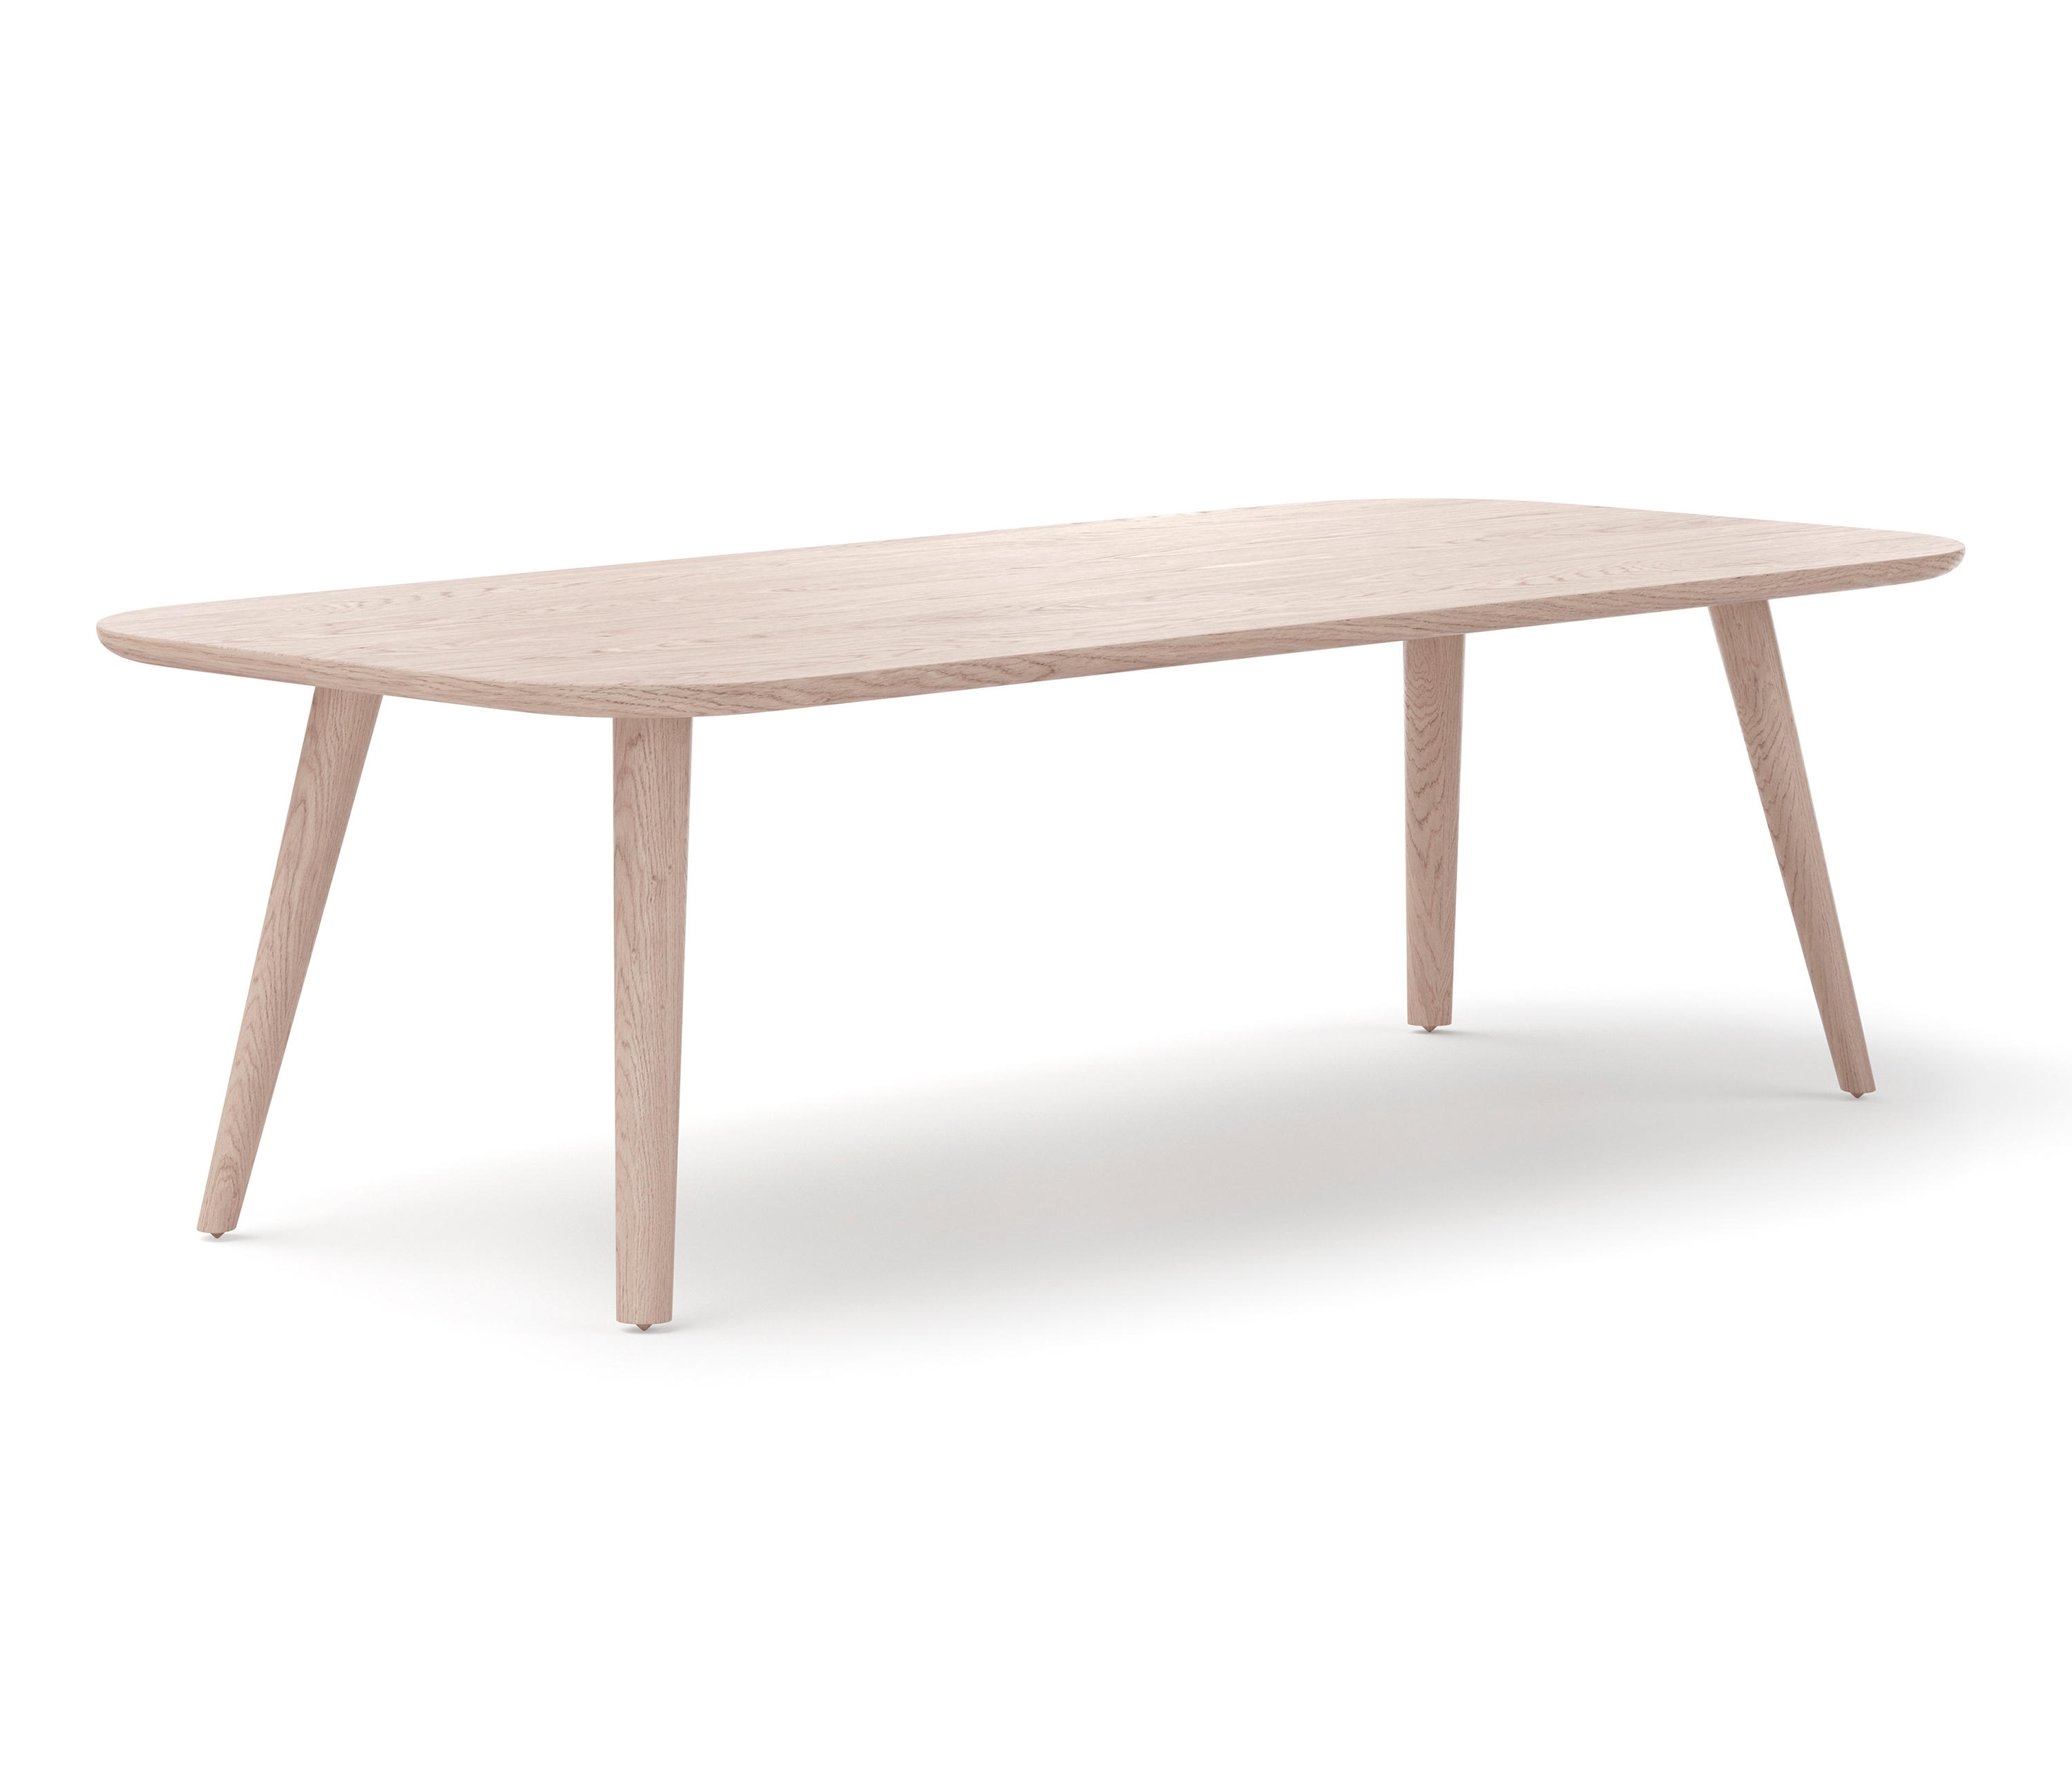 Geometry 71036 – Coffee Tables From Keilhauer | Architonic In Element Ivory Rectangular Coffee Tables (View 9 of 30)